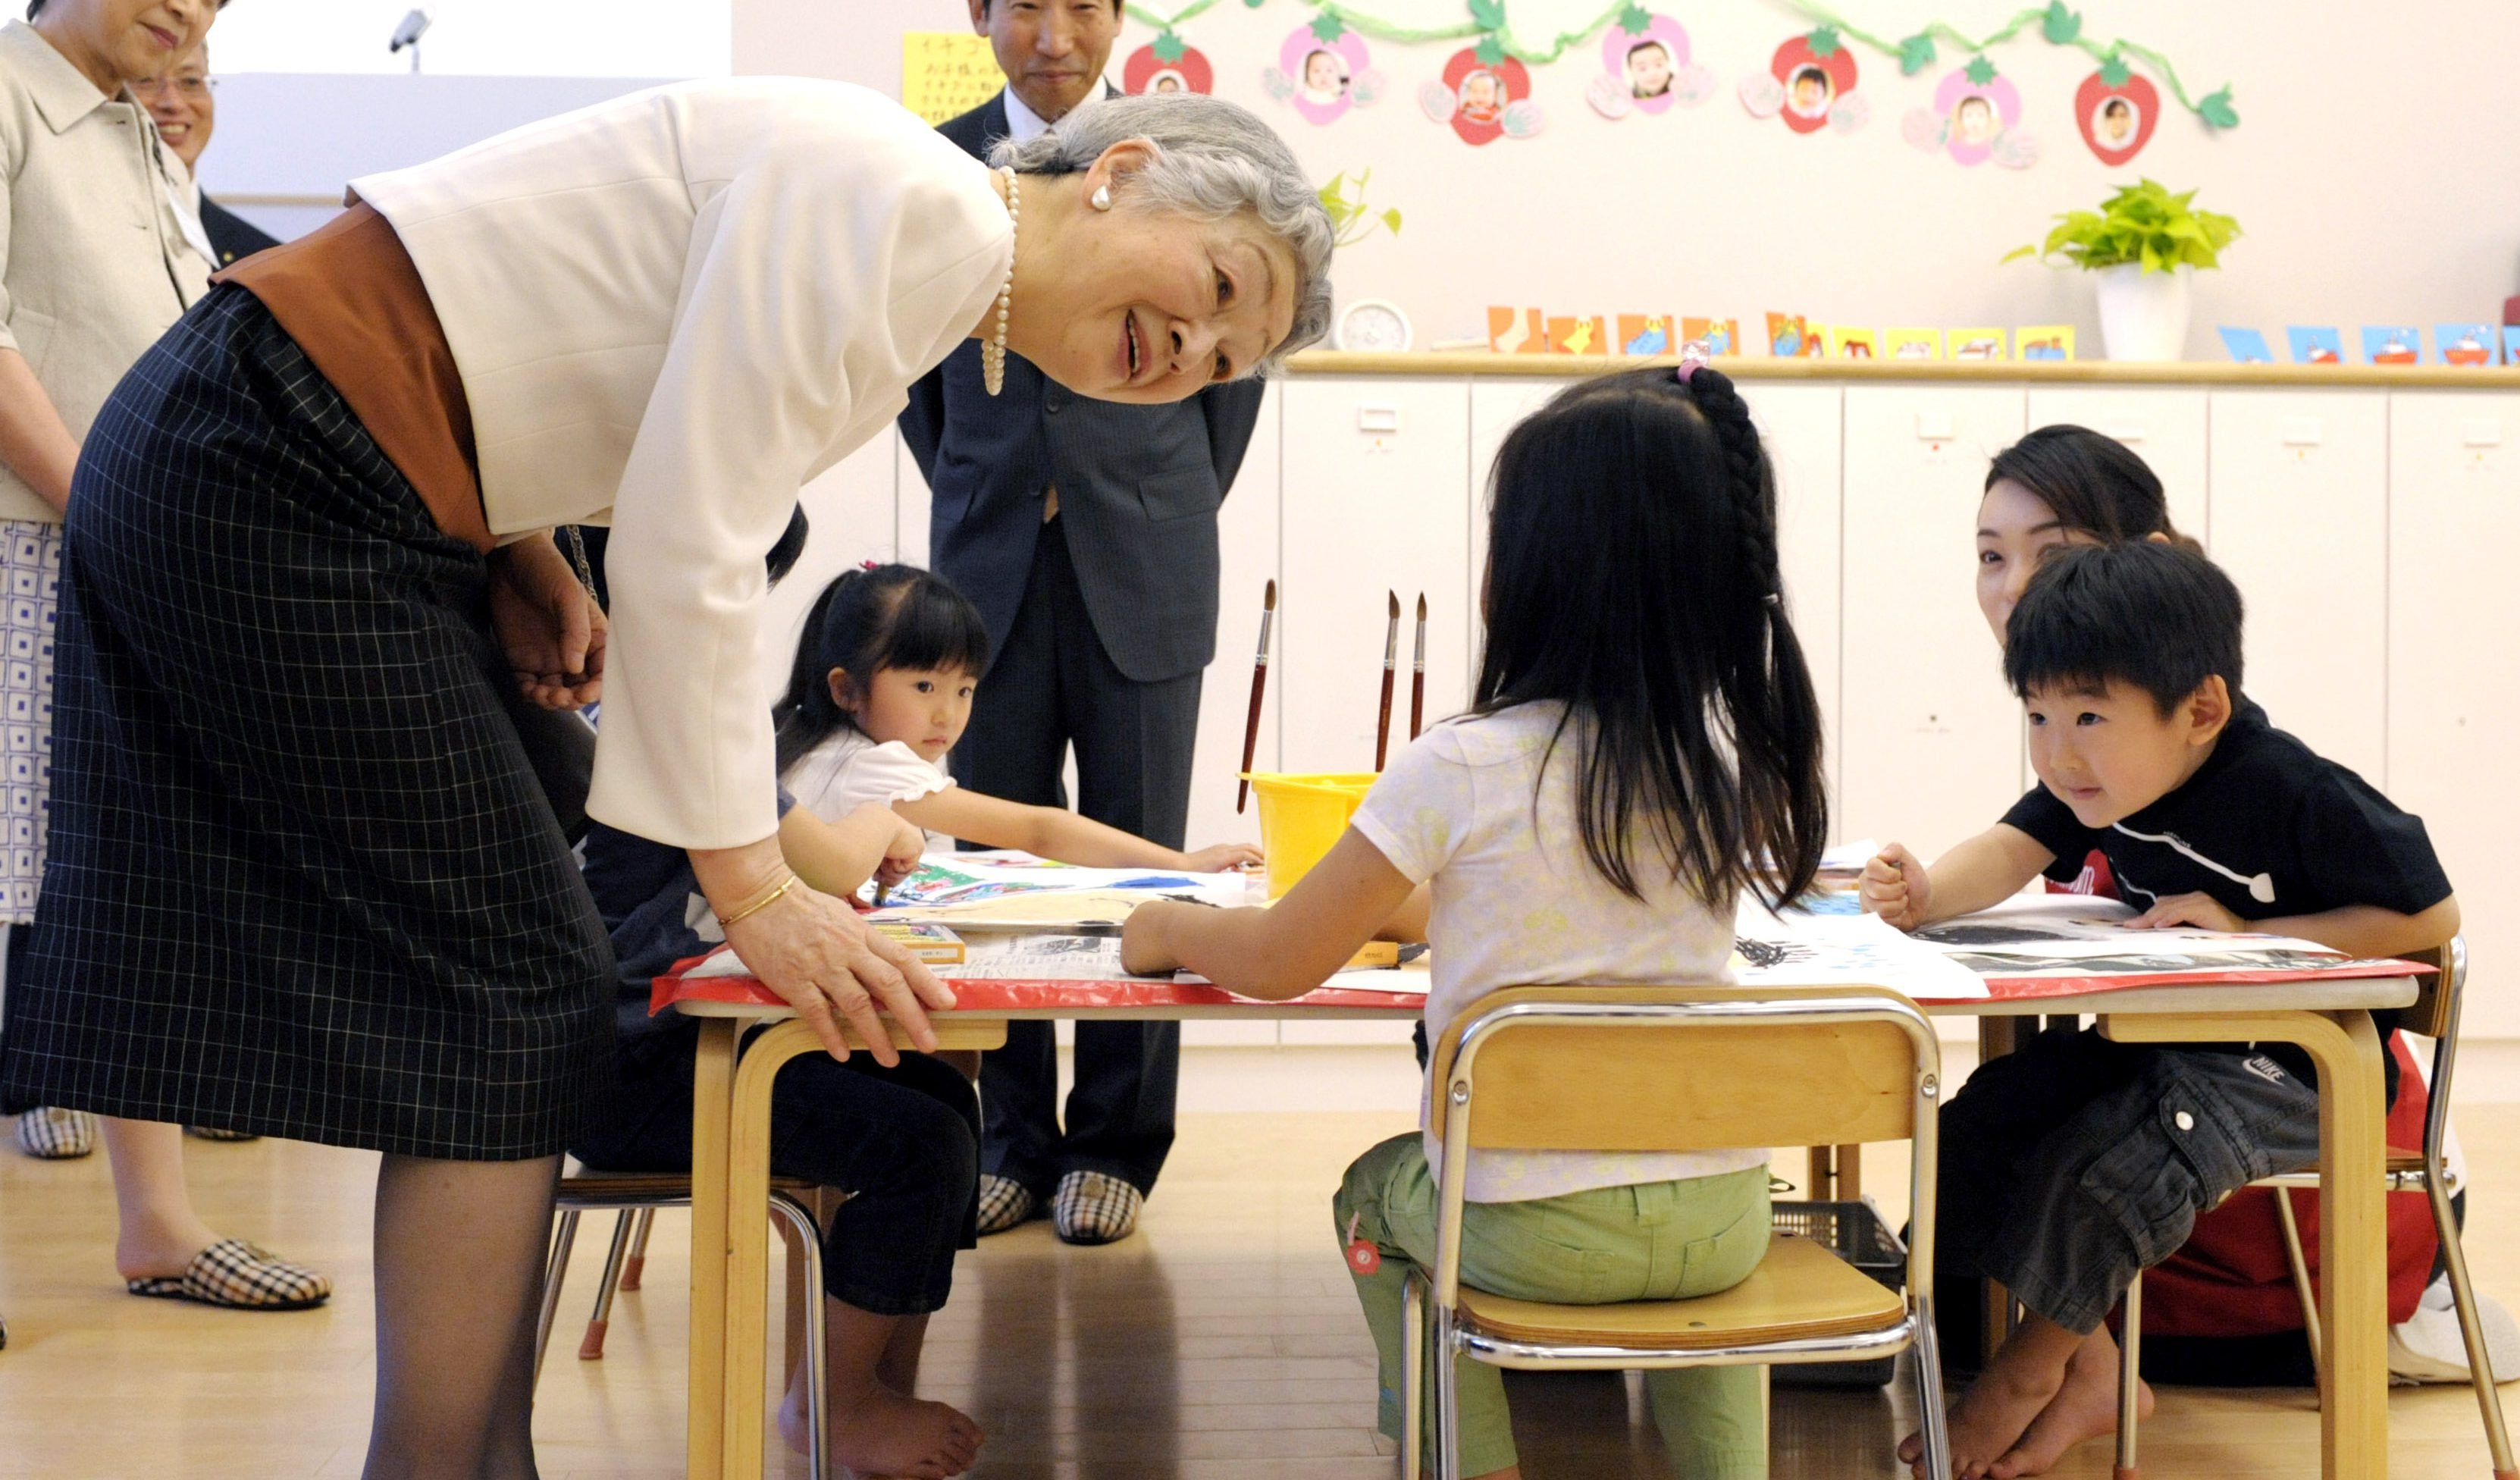 Japanese Empress Michiko visits Shiseido's Kangaroom daycare center in Shiodome in Tokyo, May 15, 2009.